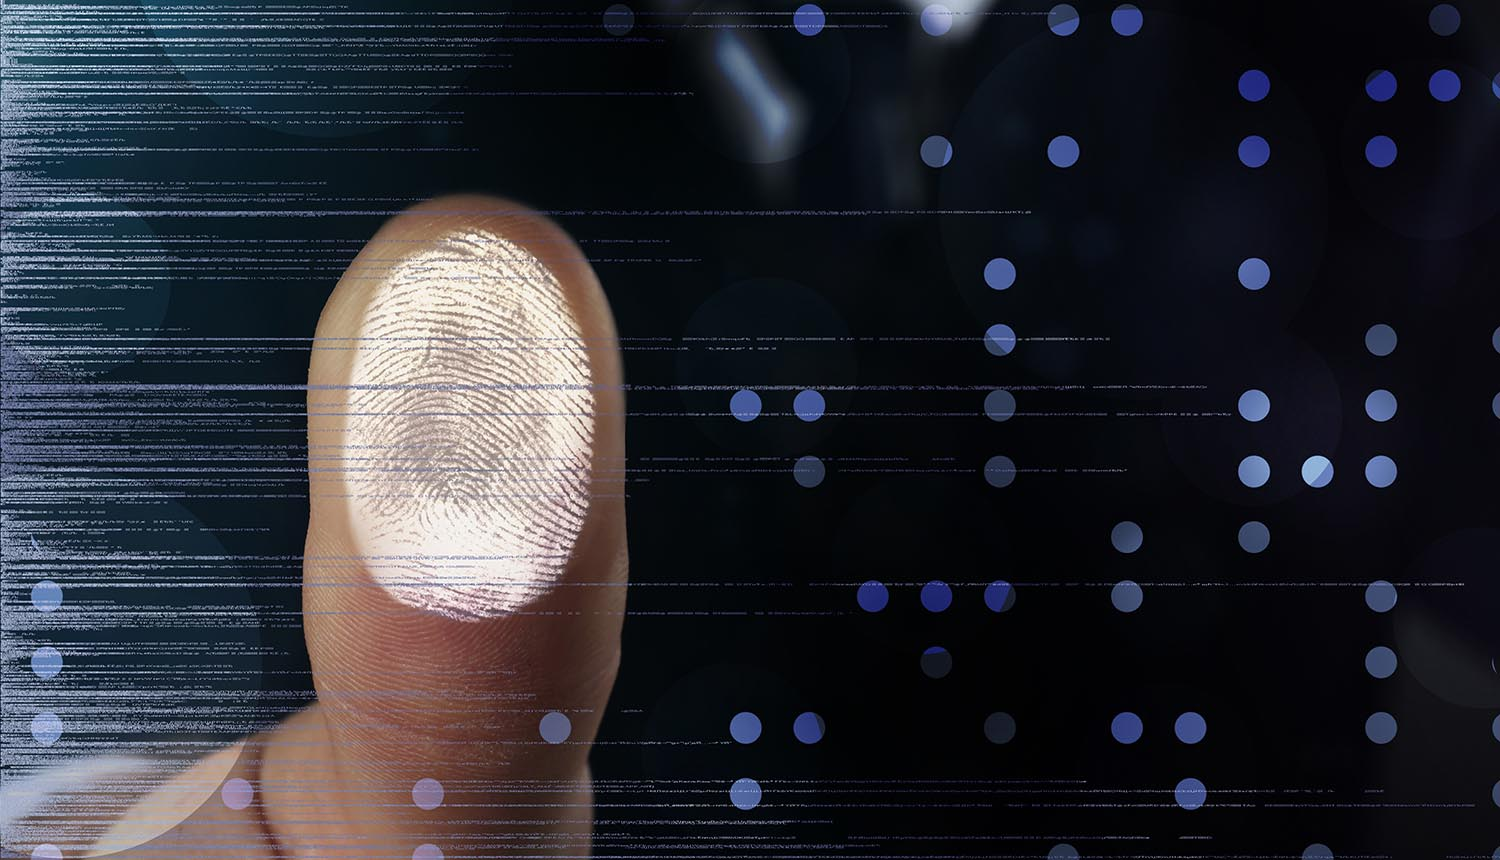 biometric fingerprint data